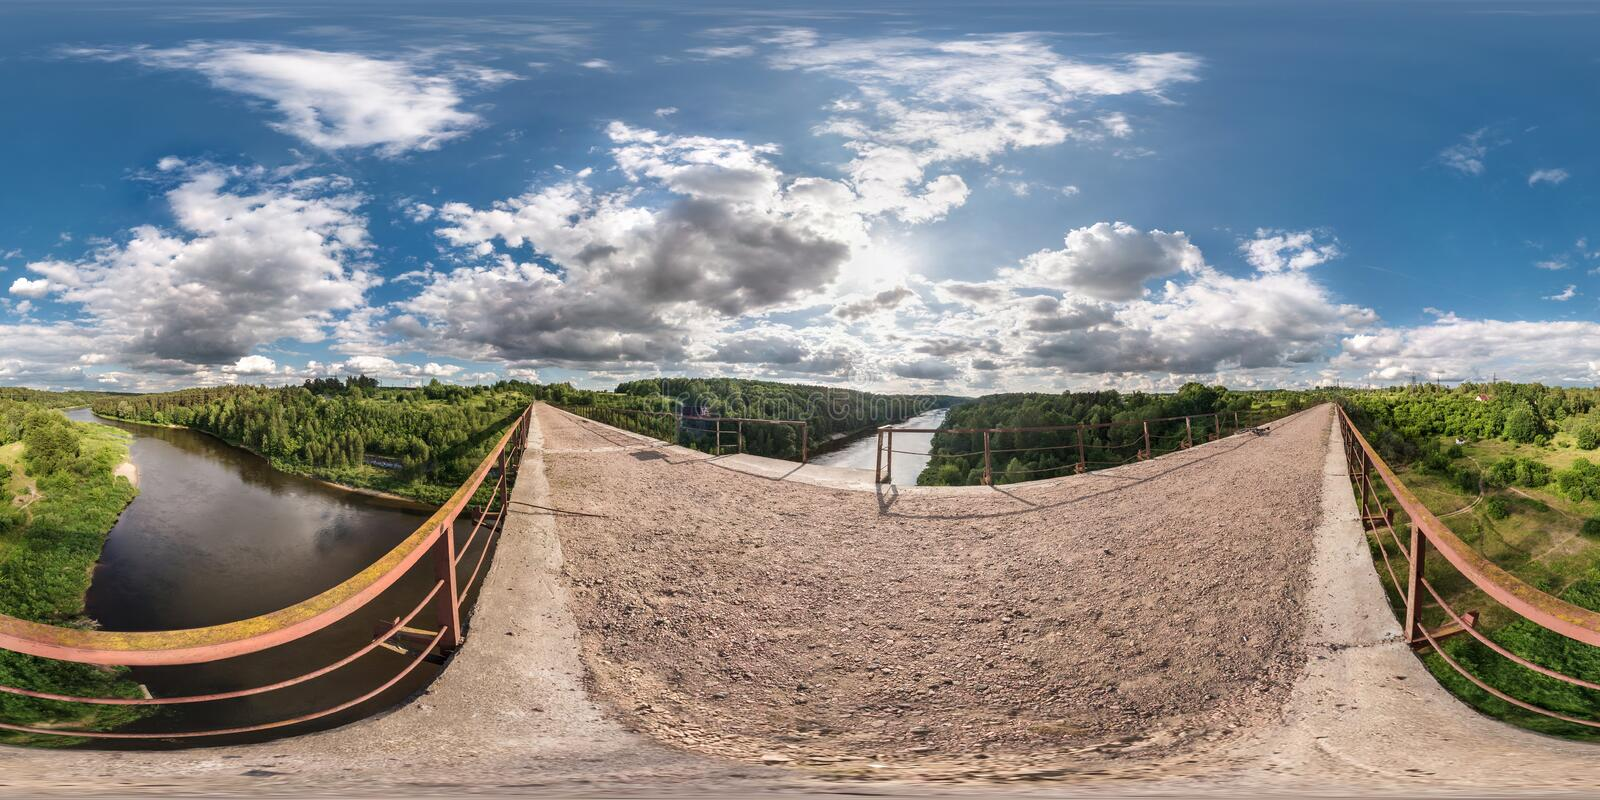 Full 360 degree seamless panorama in equirectangular spherical equidistant projection. Panorama view on abandon bridge near river. With nice clouds. Skybox as stock photography